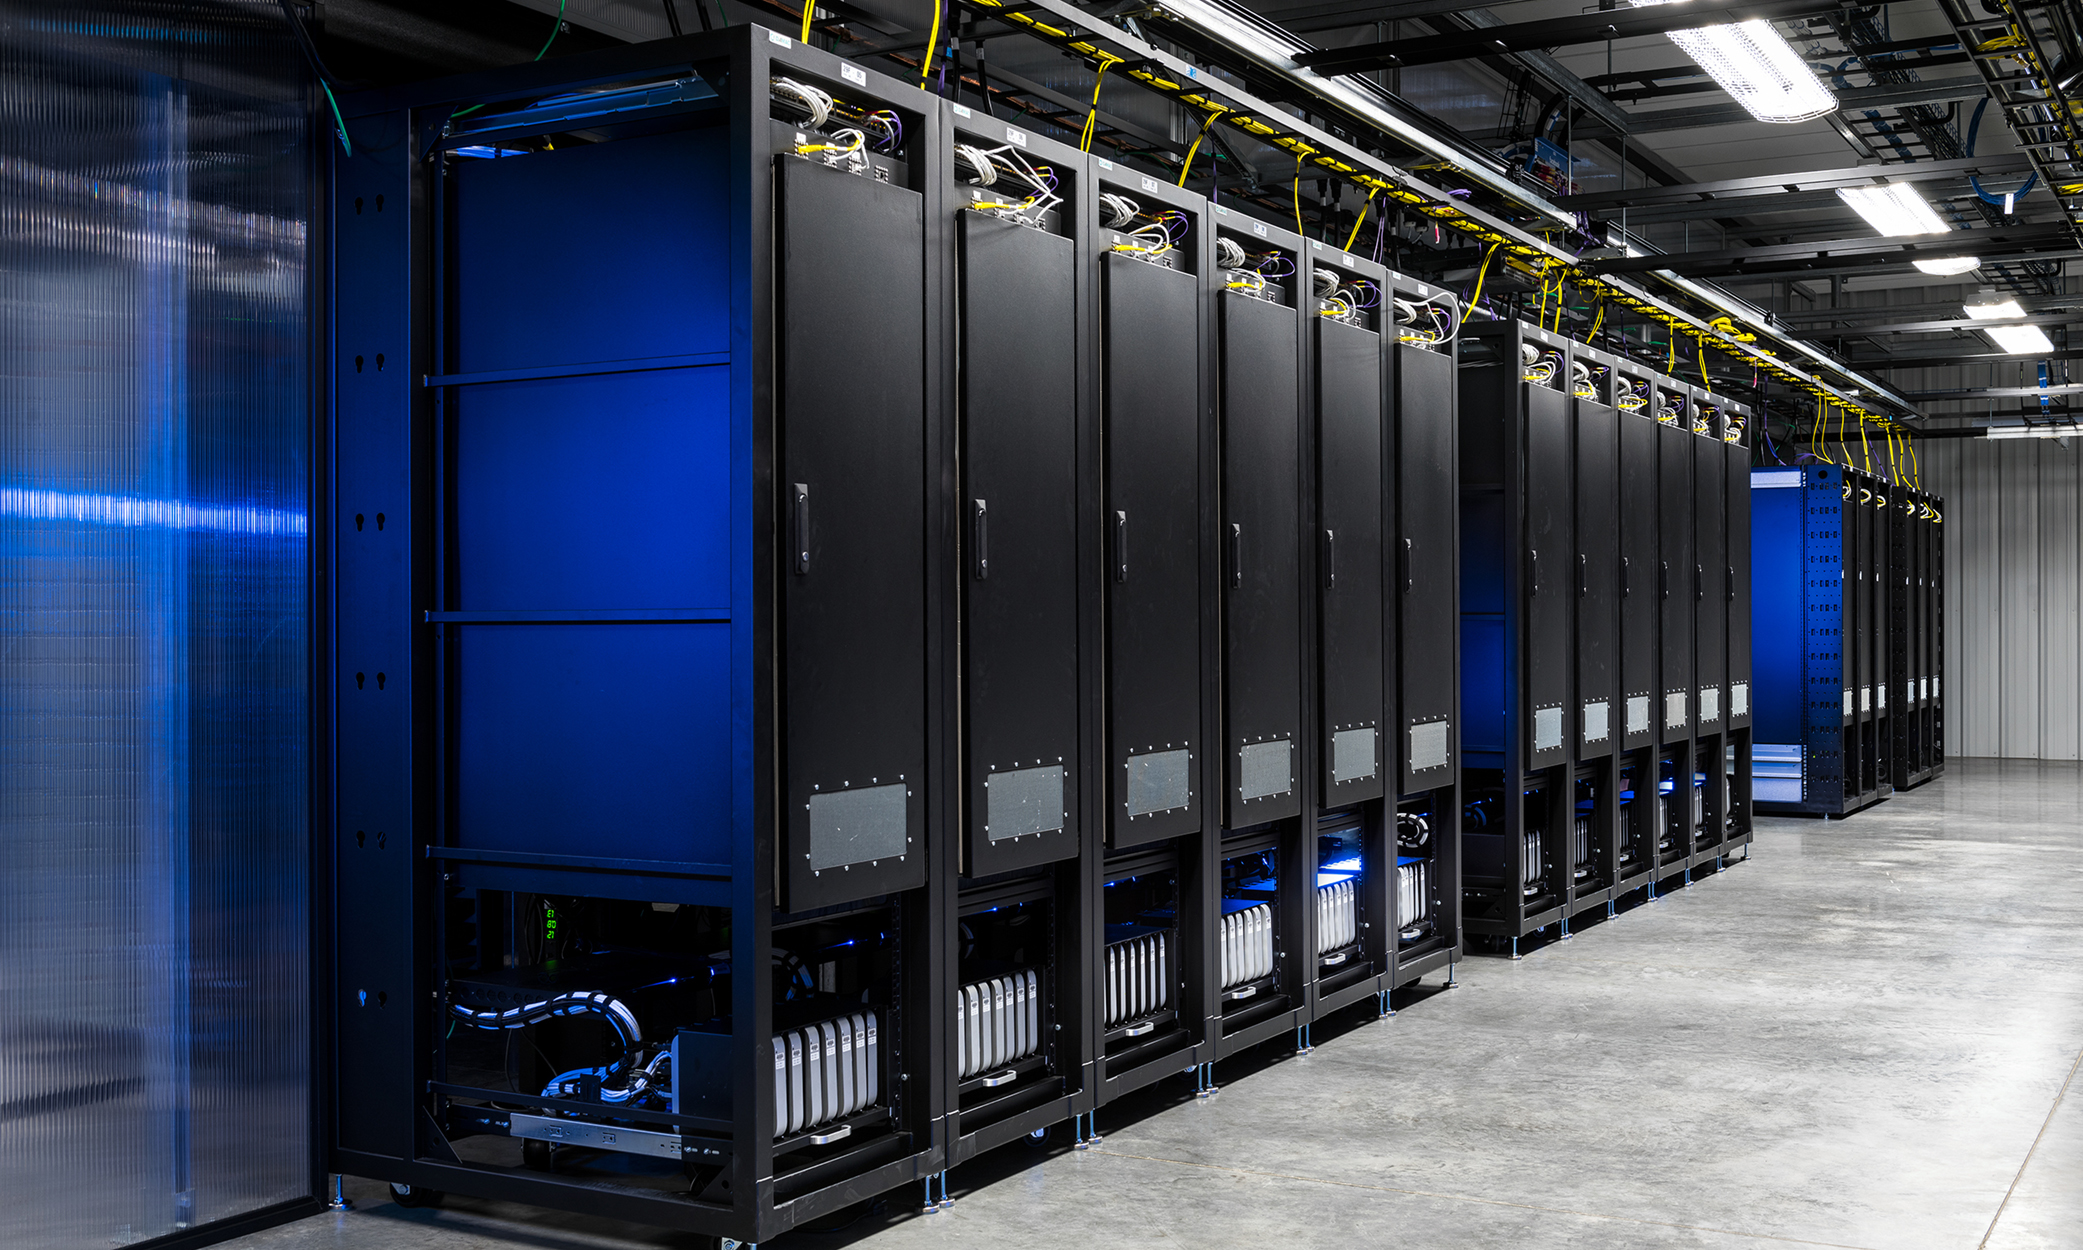 The Mobile Device Lab At The Prineville Data Center